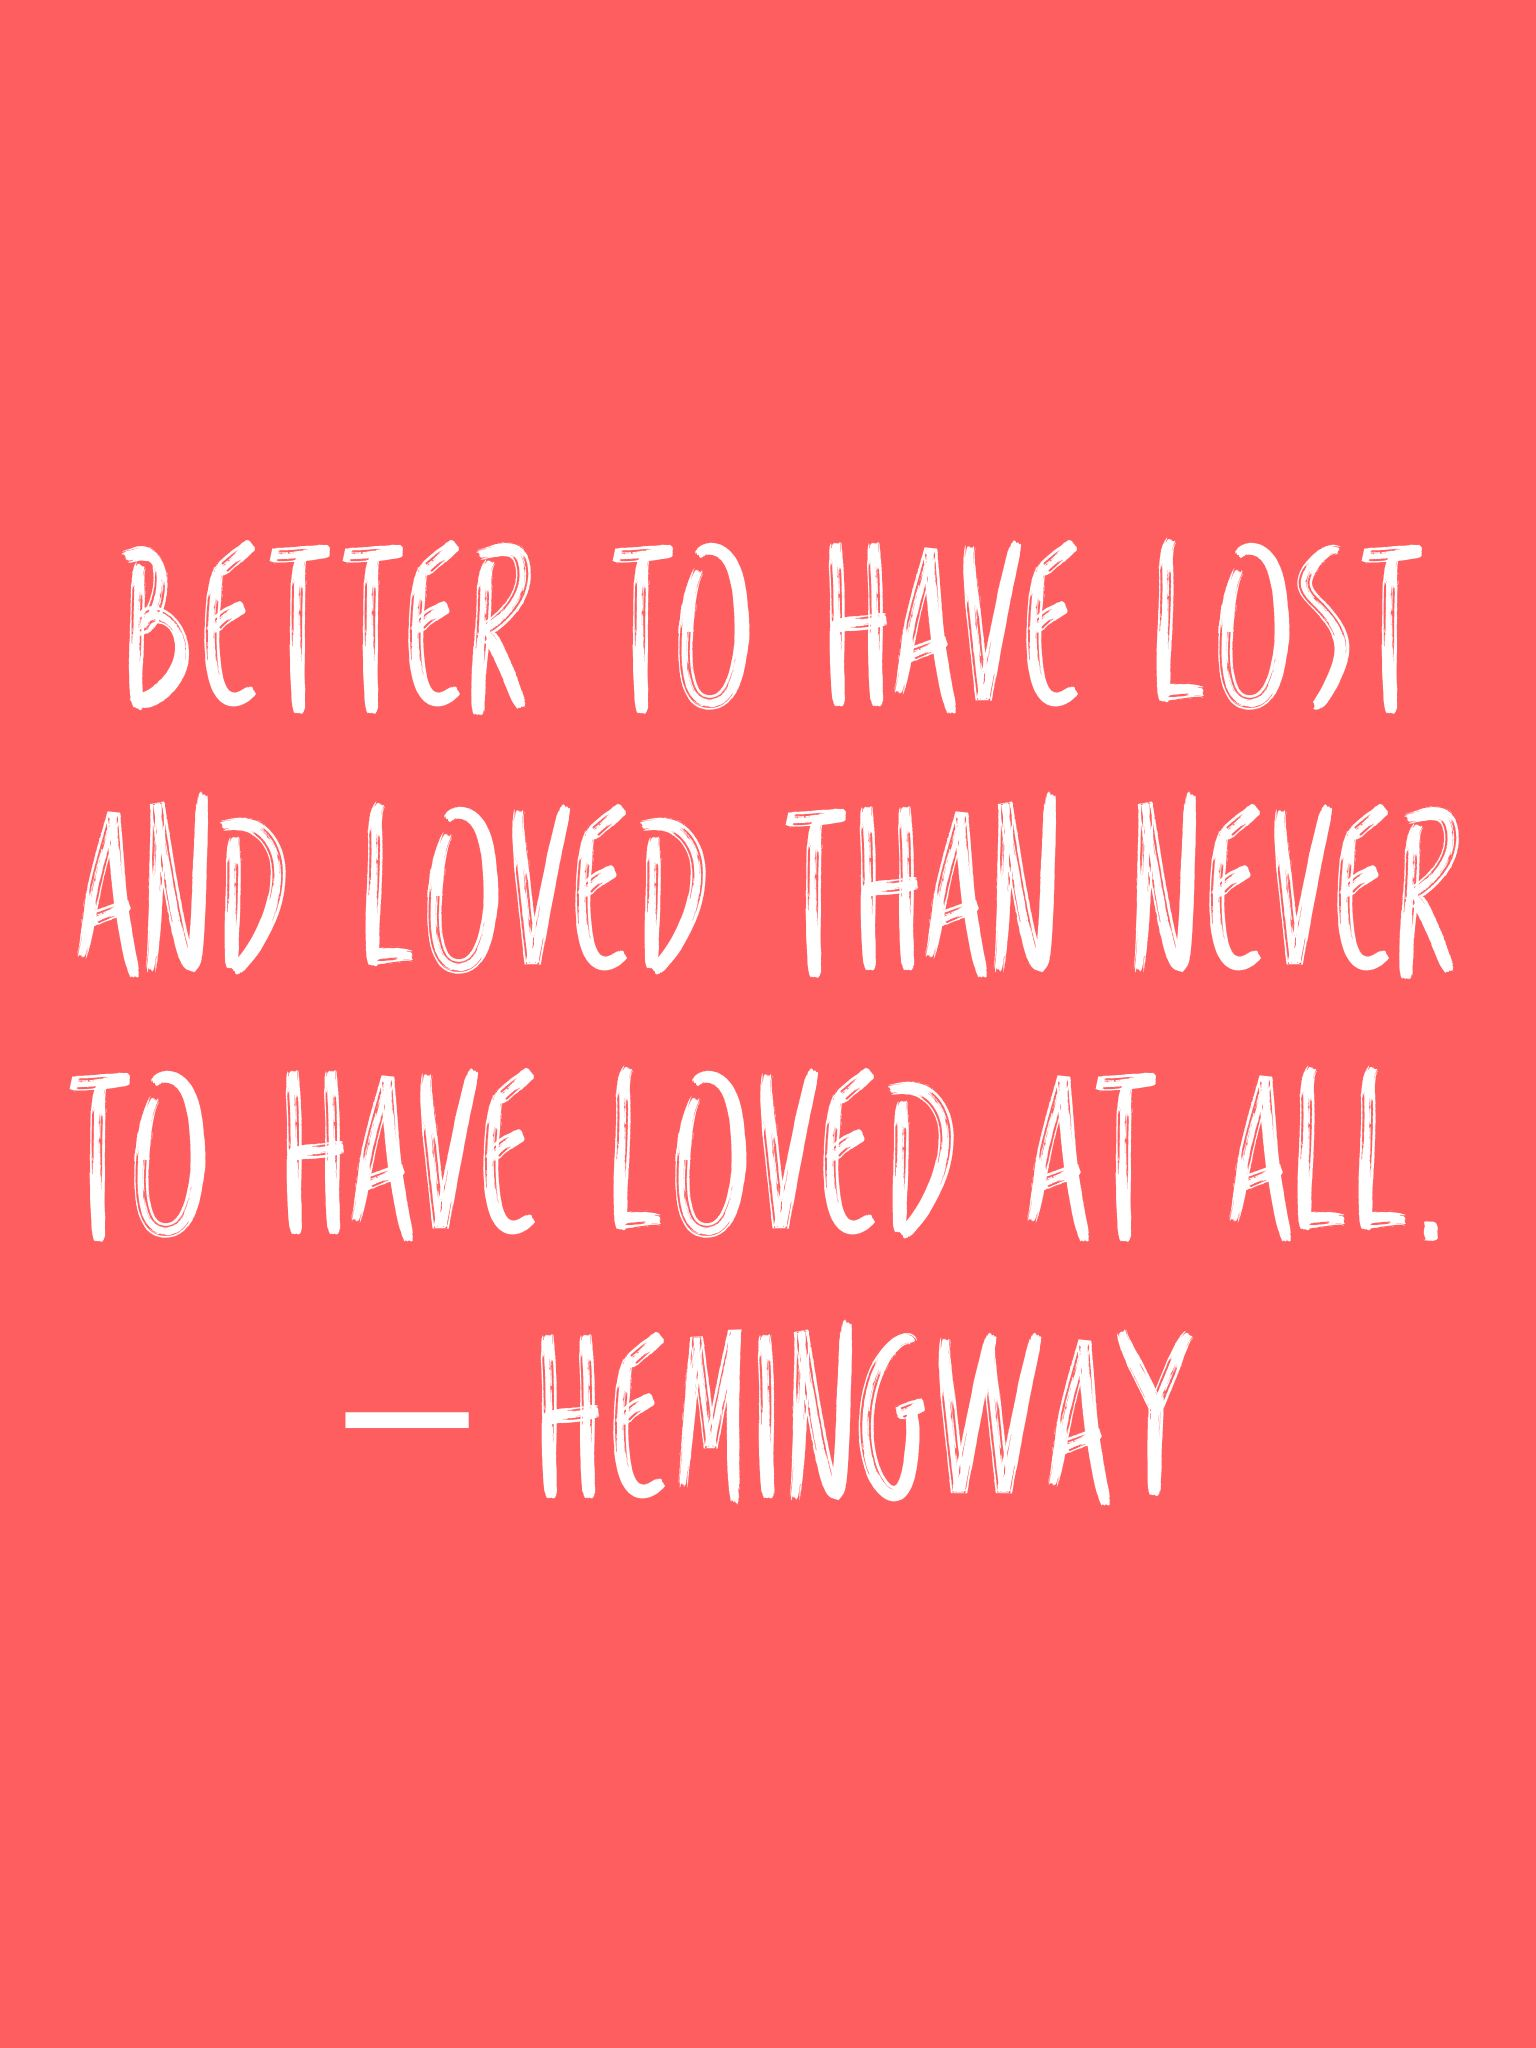 Hemingway Quotes On Love Better To Have Lost And Loved Than Never To Have Loved At All